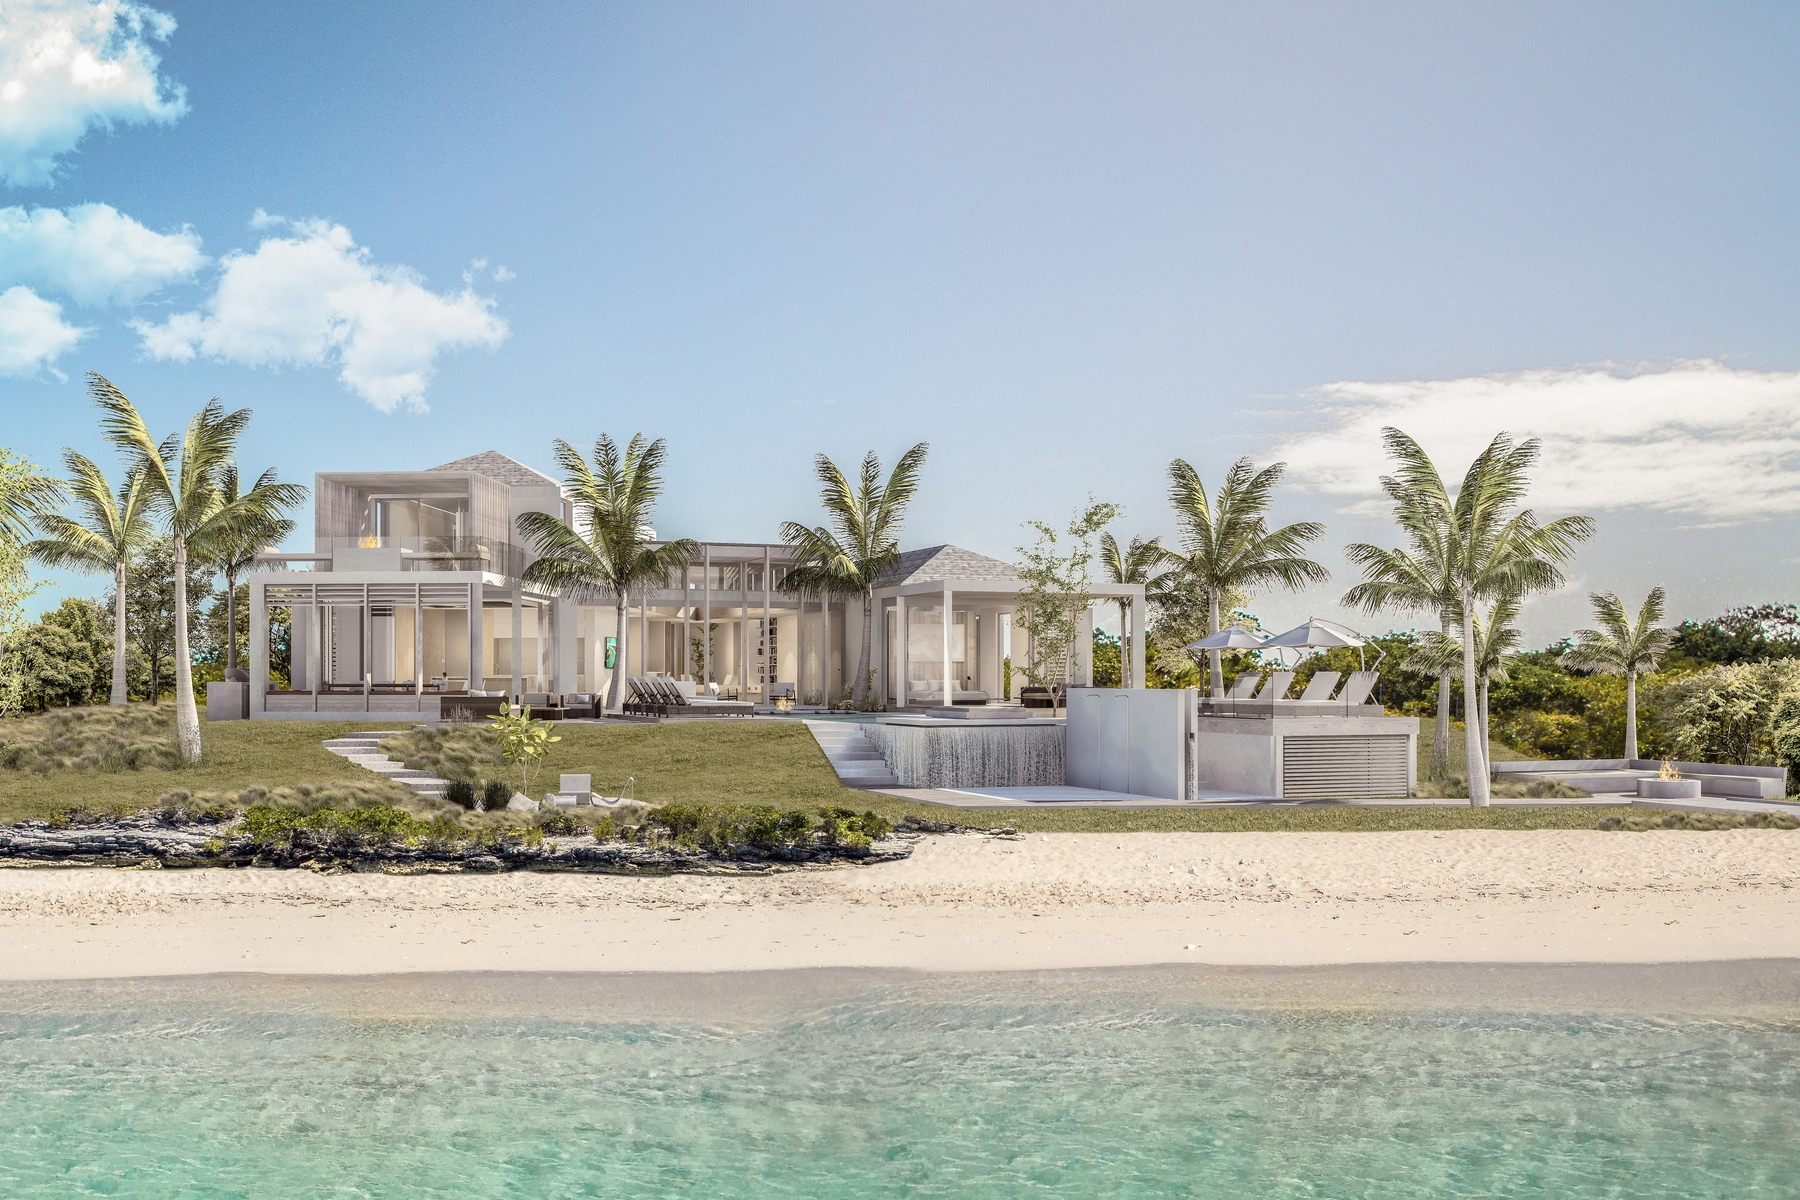 Tek Ailelik Ev için Satış at Panorama Y House - Beachfront Lot 2 Leeward, Providenciales, Turks Ve Caicos Adalari